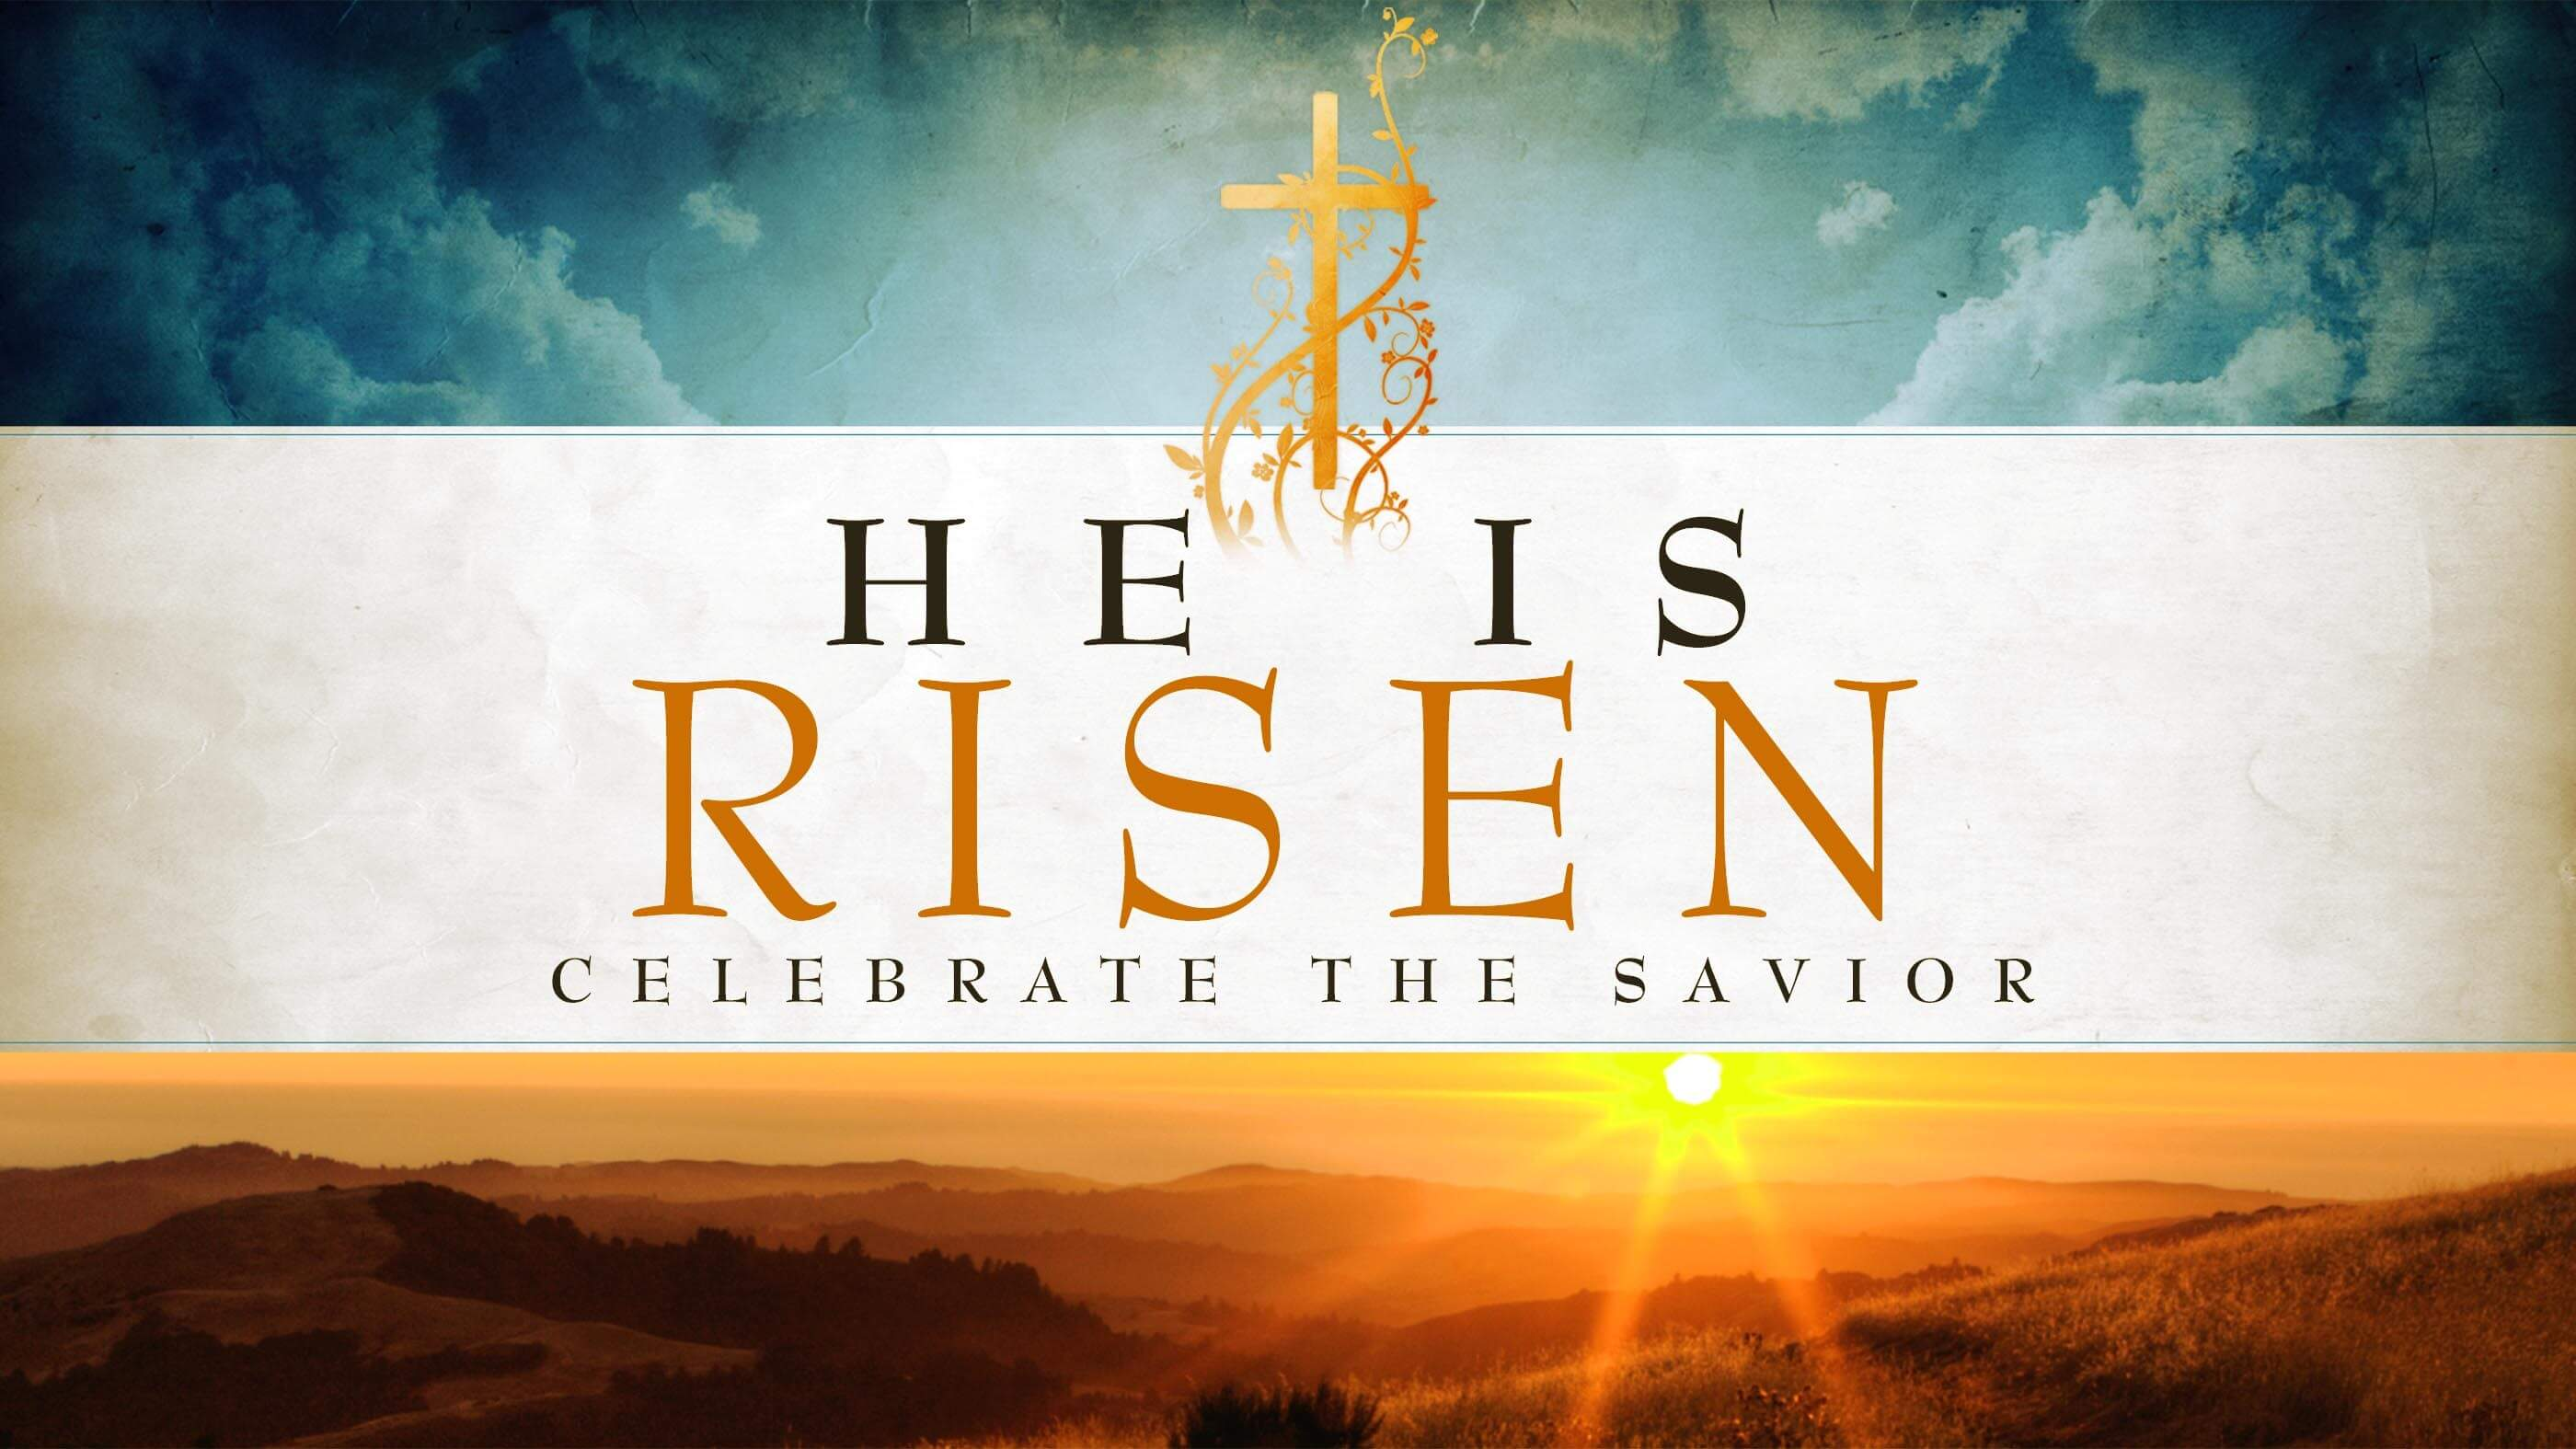 happy easter jesus resurrection risen hd wallpaper desktop